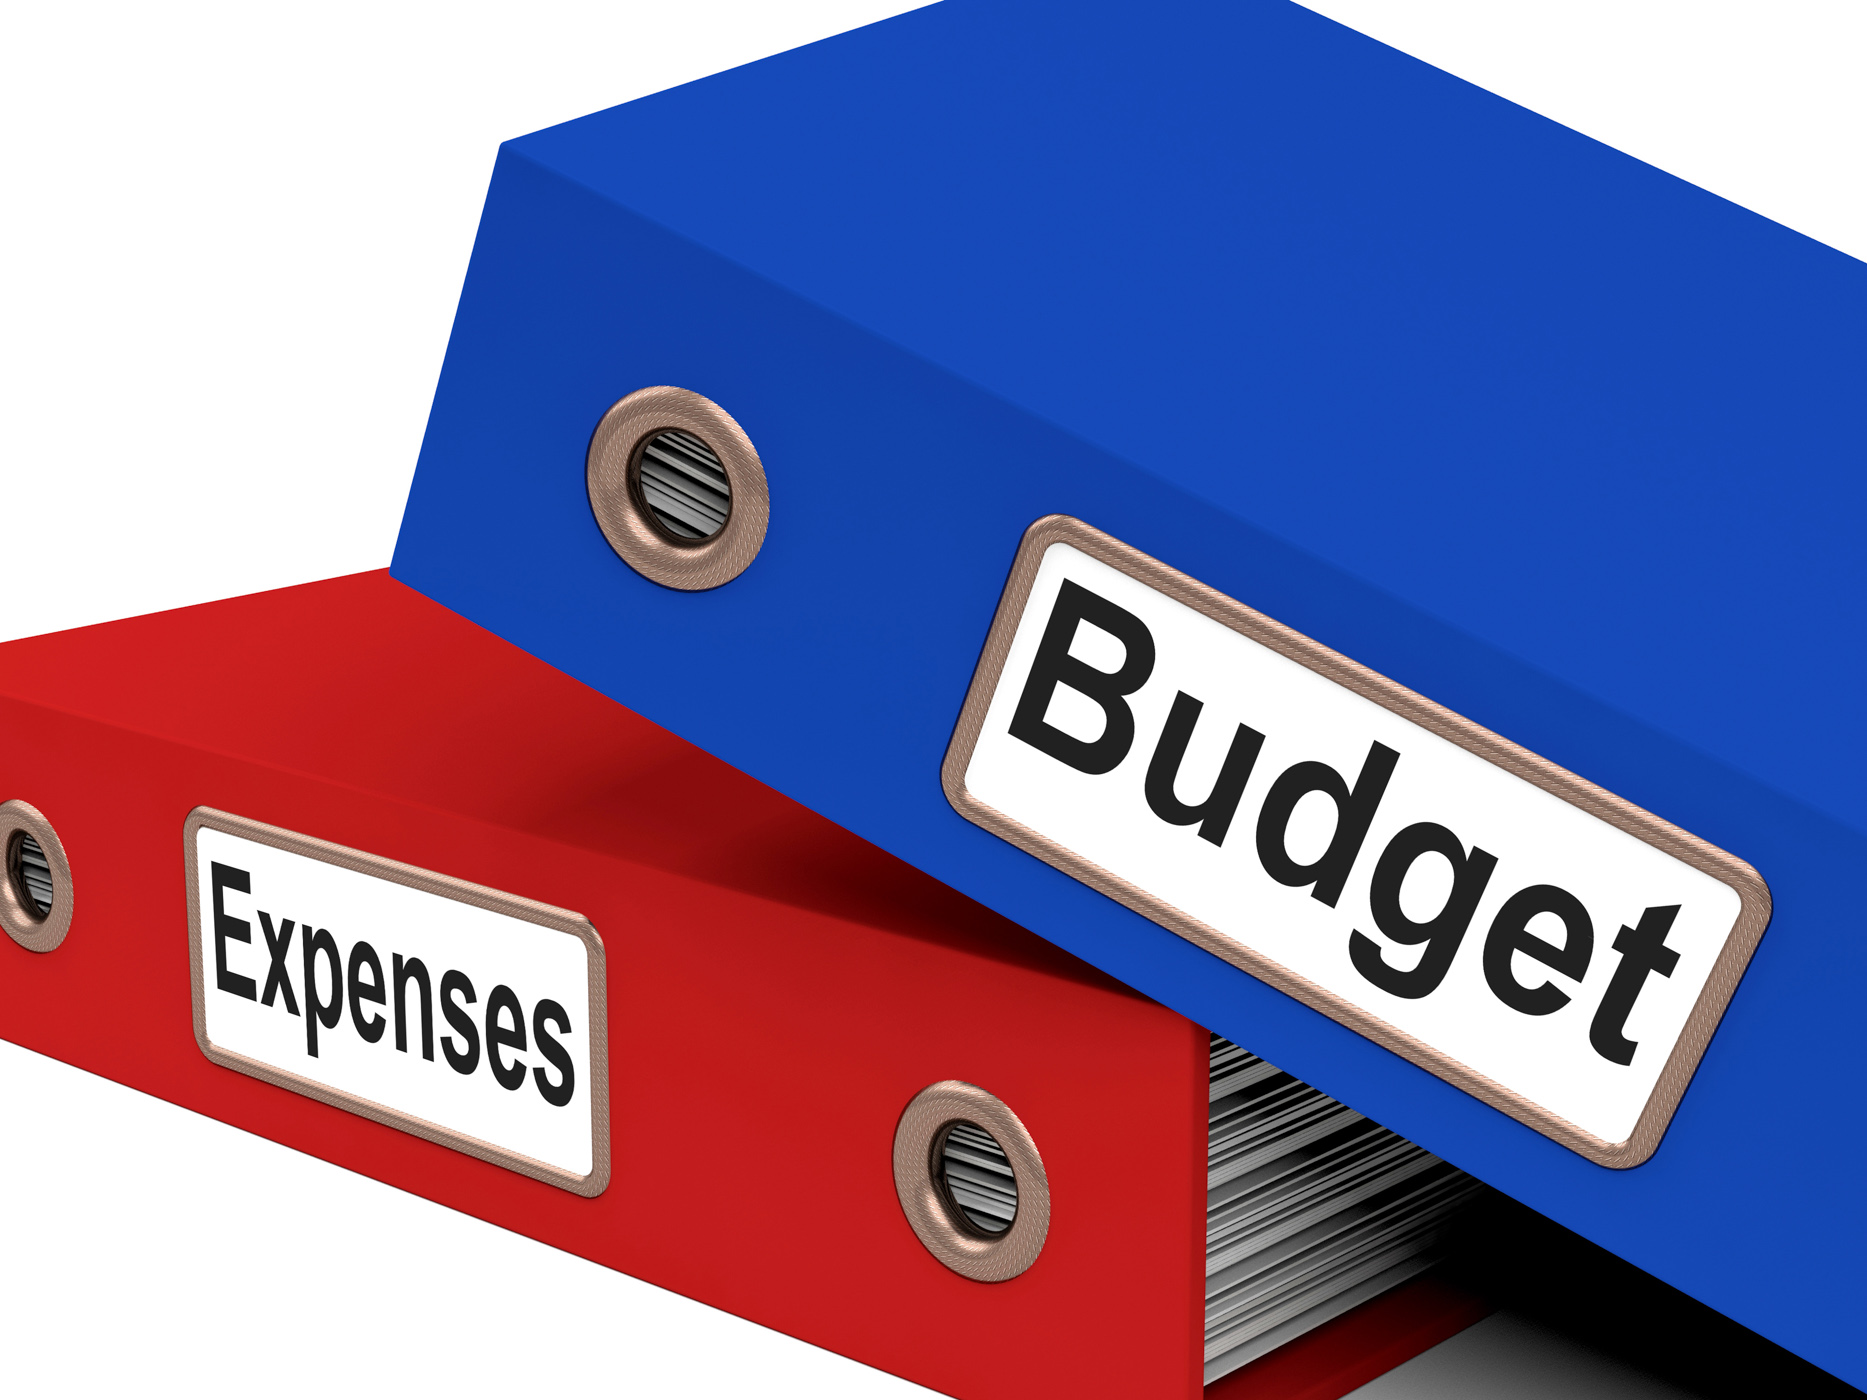 Files budget indicates correspondence paperwork and financial photo